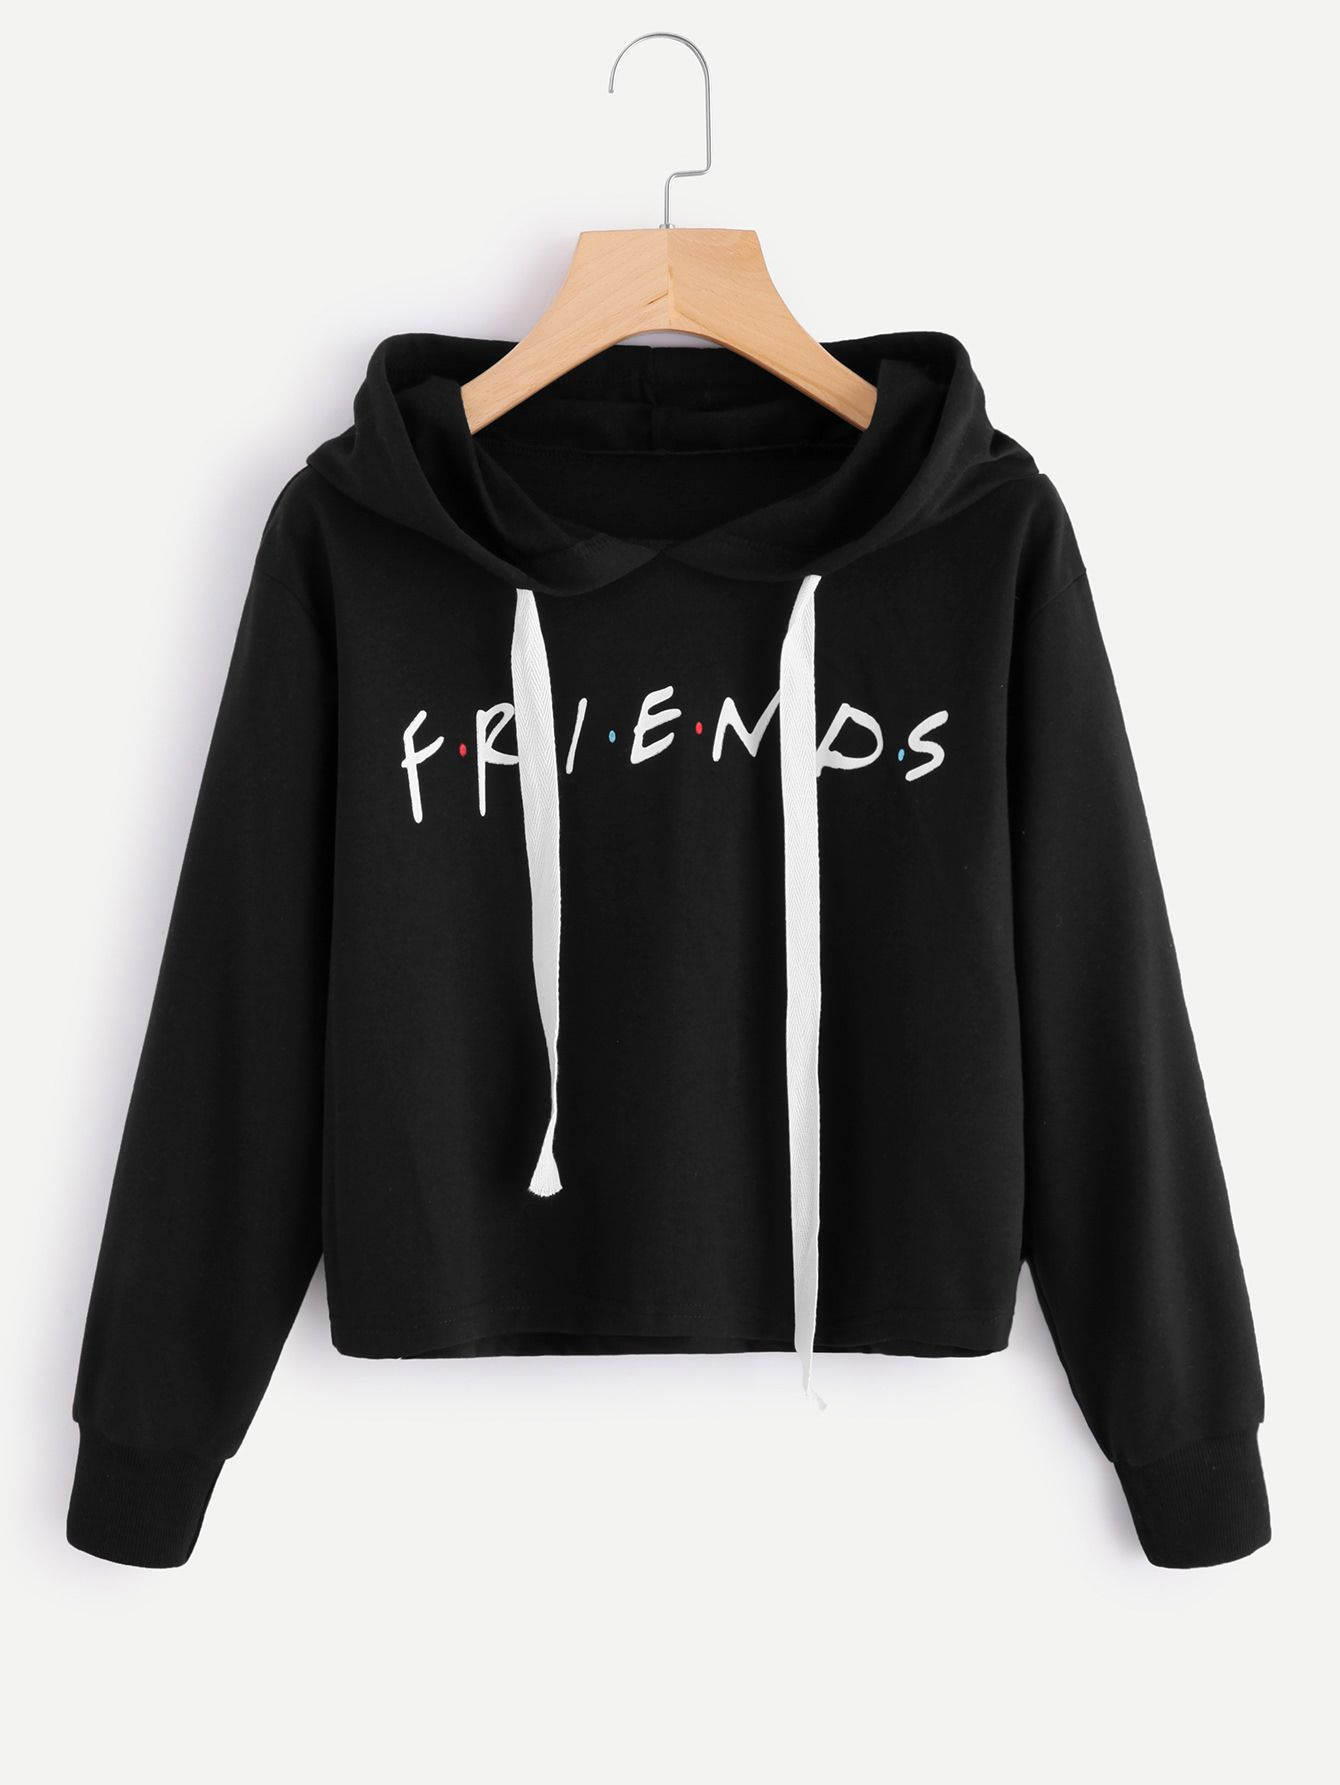 7aa5660366 Shop Friends Print Drop Shoulder Raw Hem Hoodie online. SheIn offers  Friends Print Drop Shoulder Raw Hem Hoodie & more to fit your fashionable  needs.